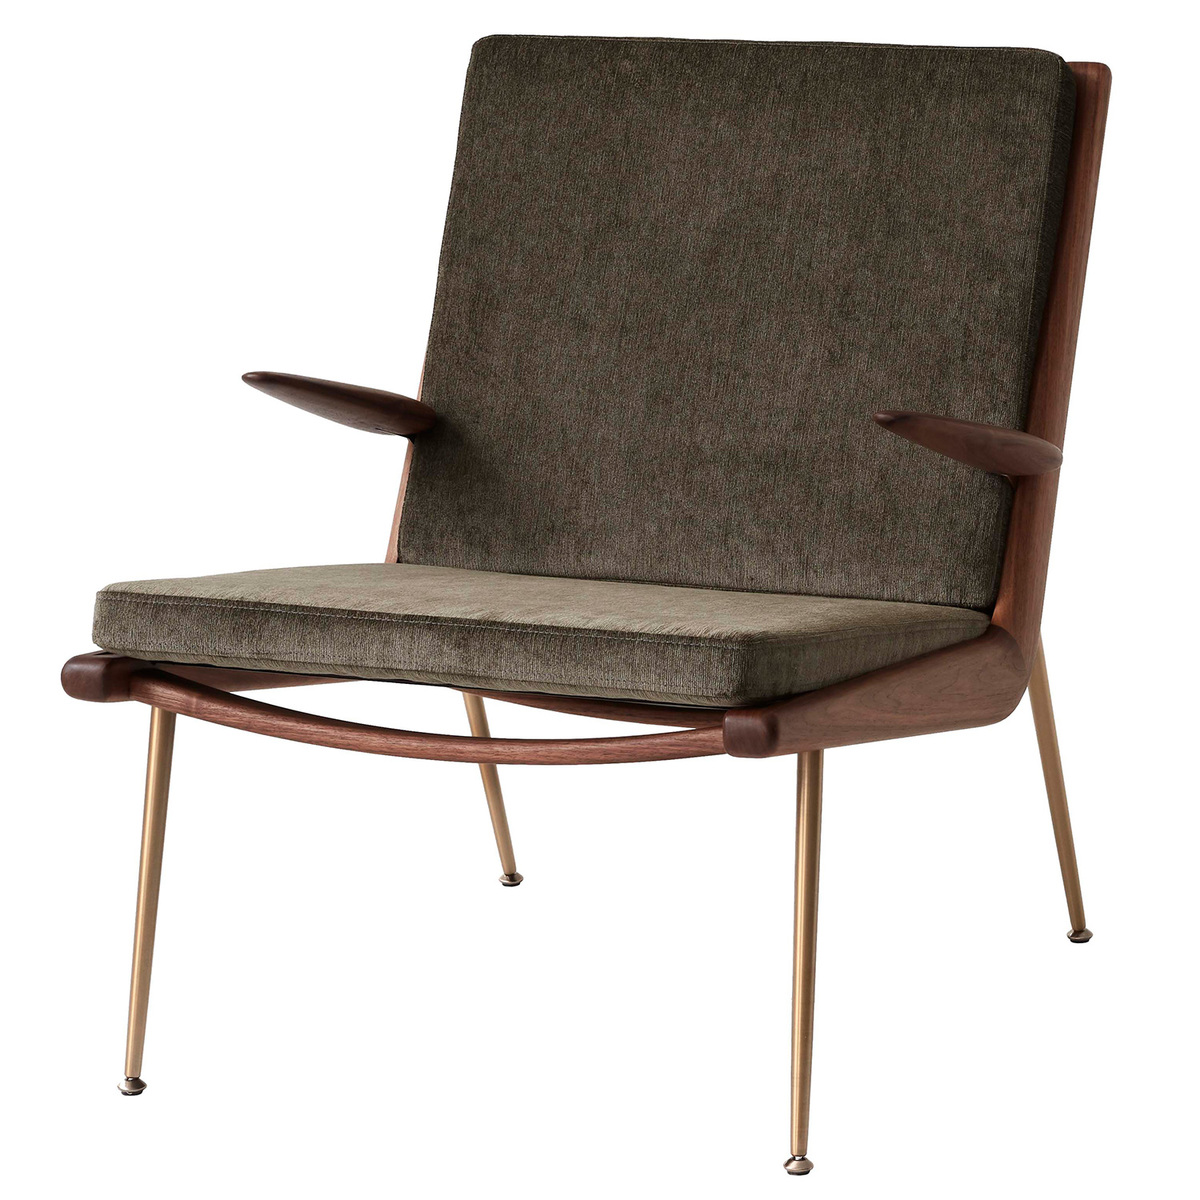 &Tradition Boomerang HM2 lounge chair, Duke 004 - oiled walnut from &Tradition